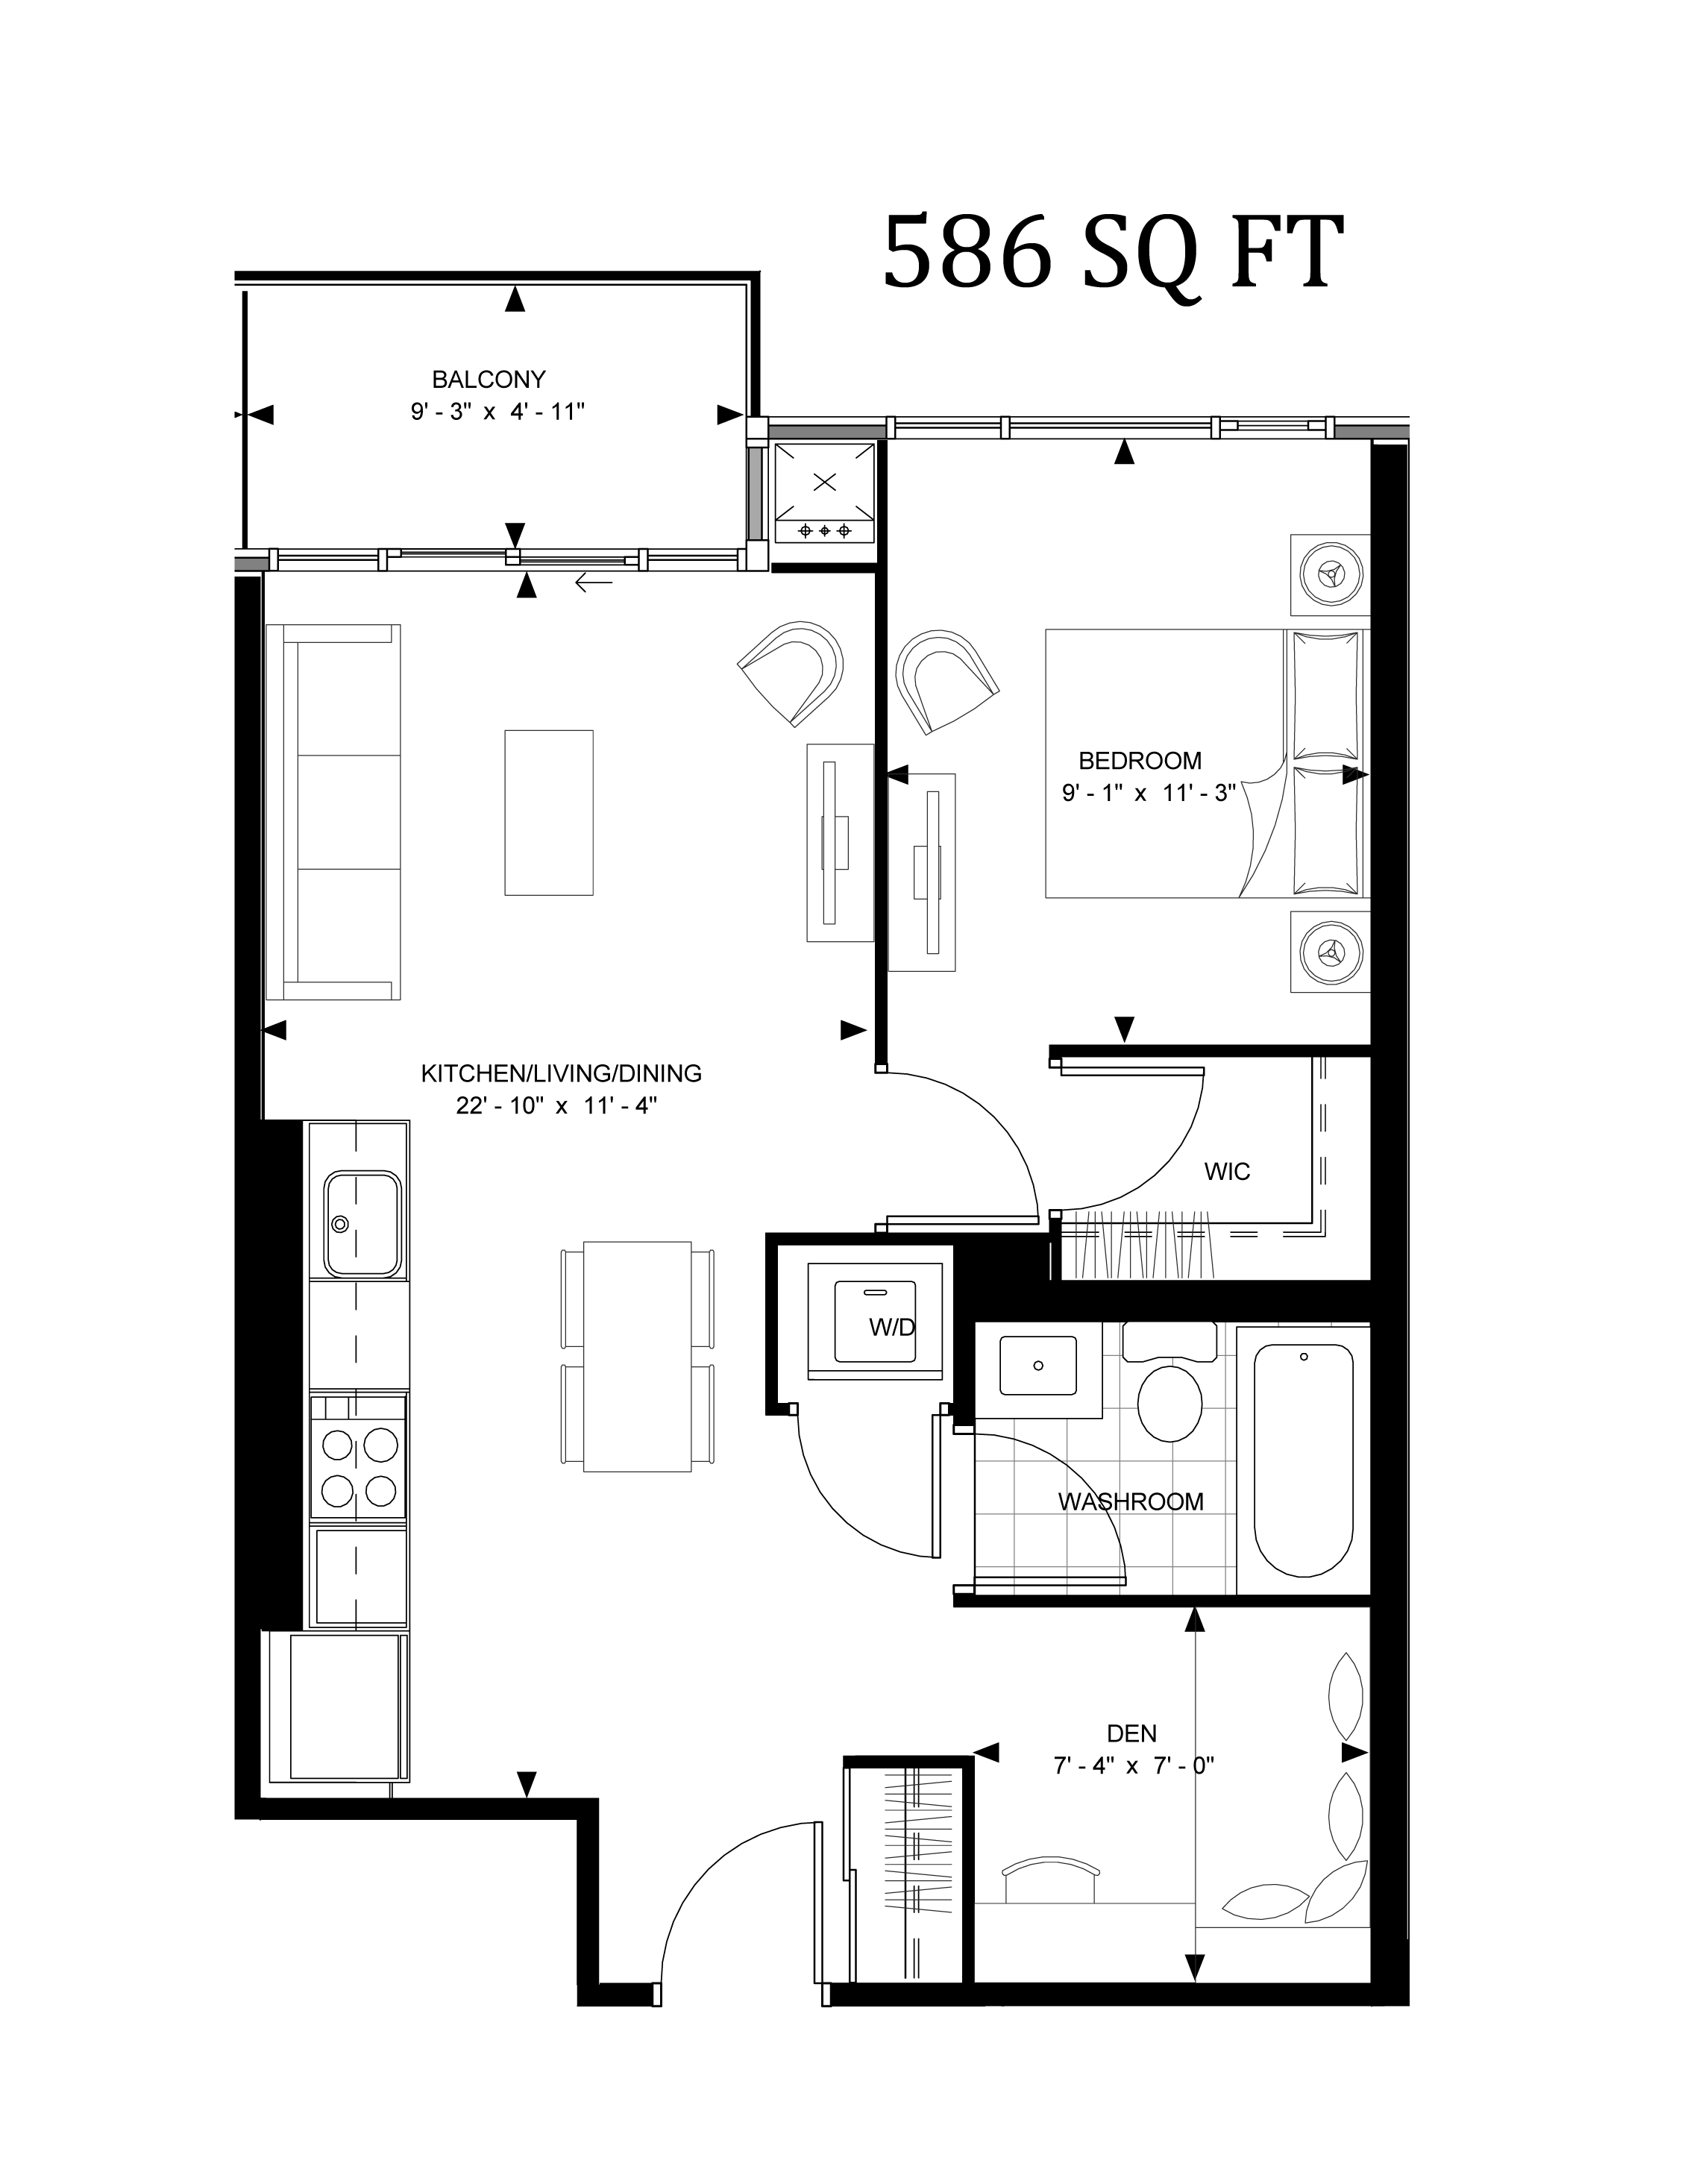 525 ADELAIDE WEST - FLOORPLAN ONE BED+DEN 586 SQ FT - CONTACT YOSSI KAPLAN